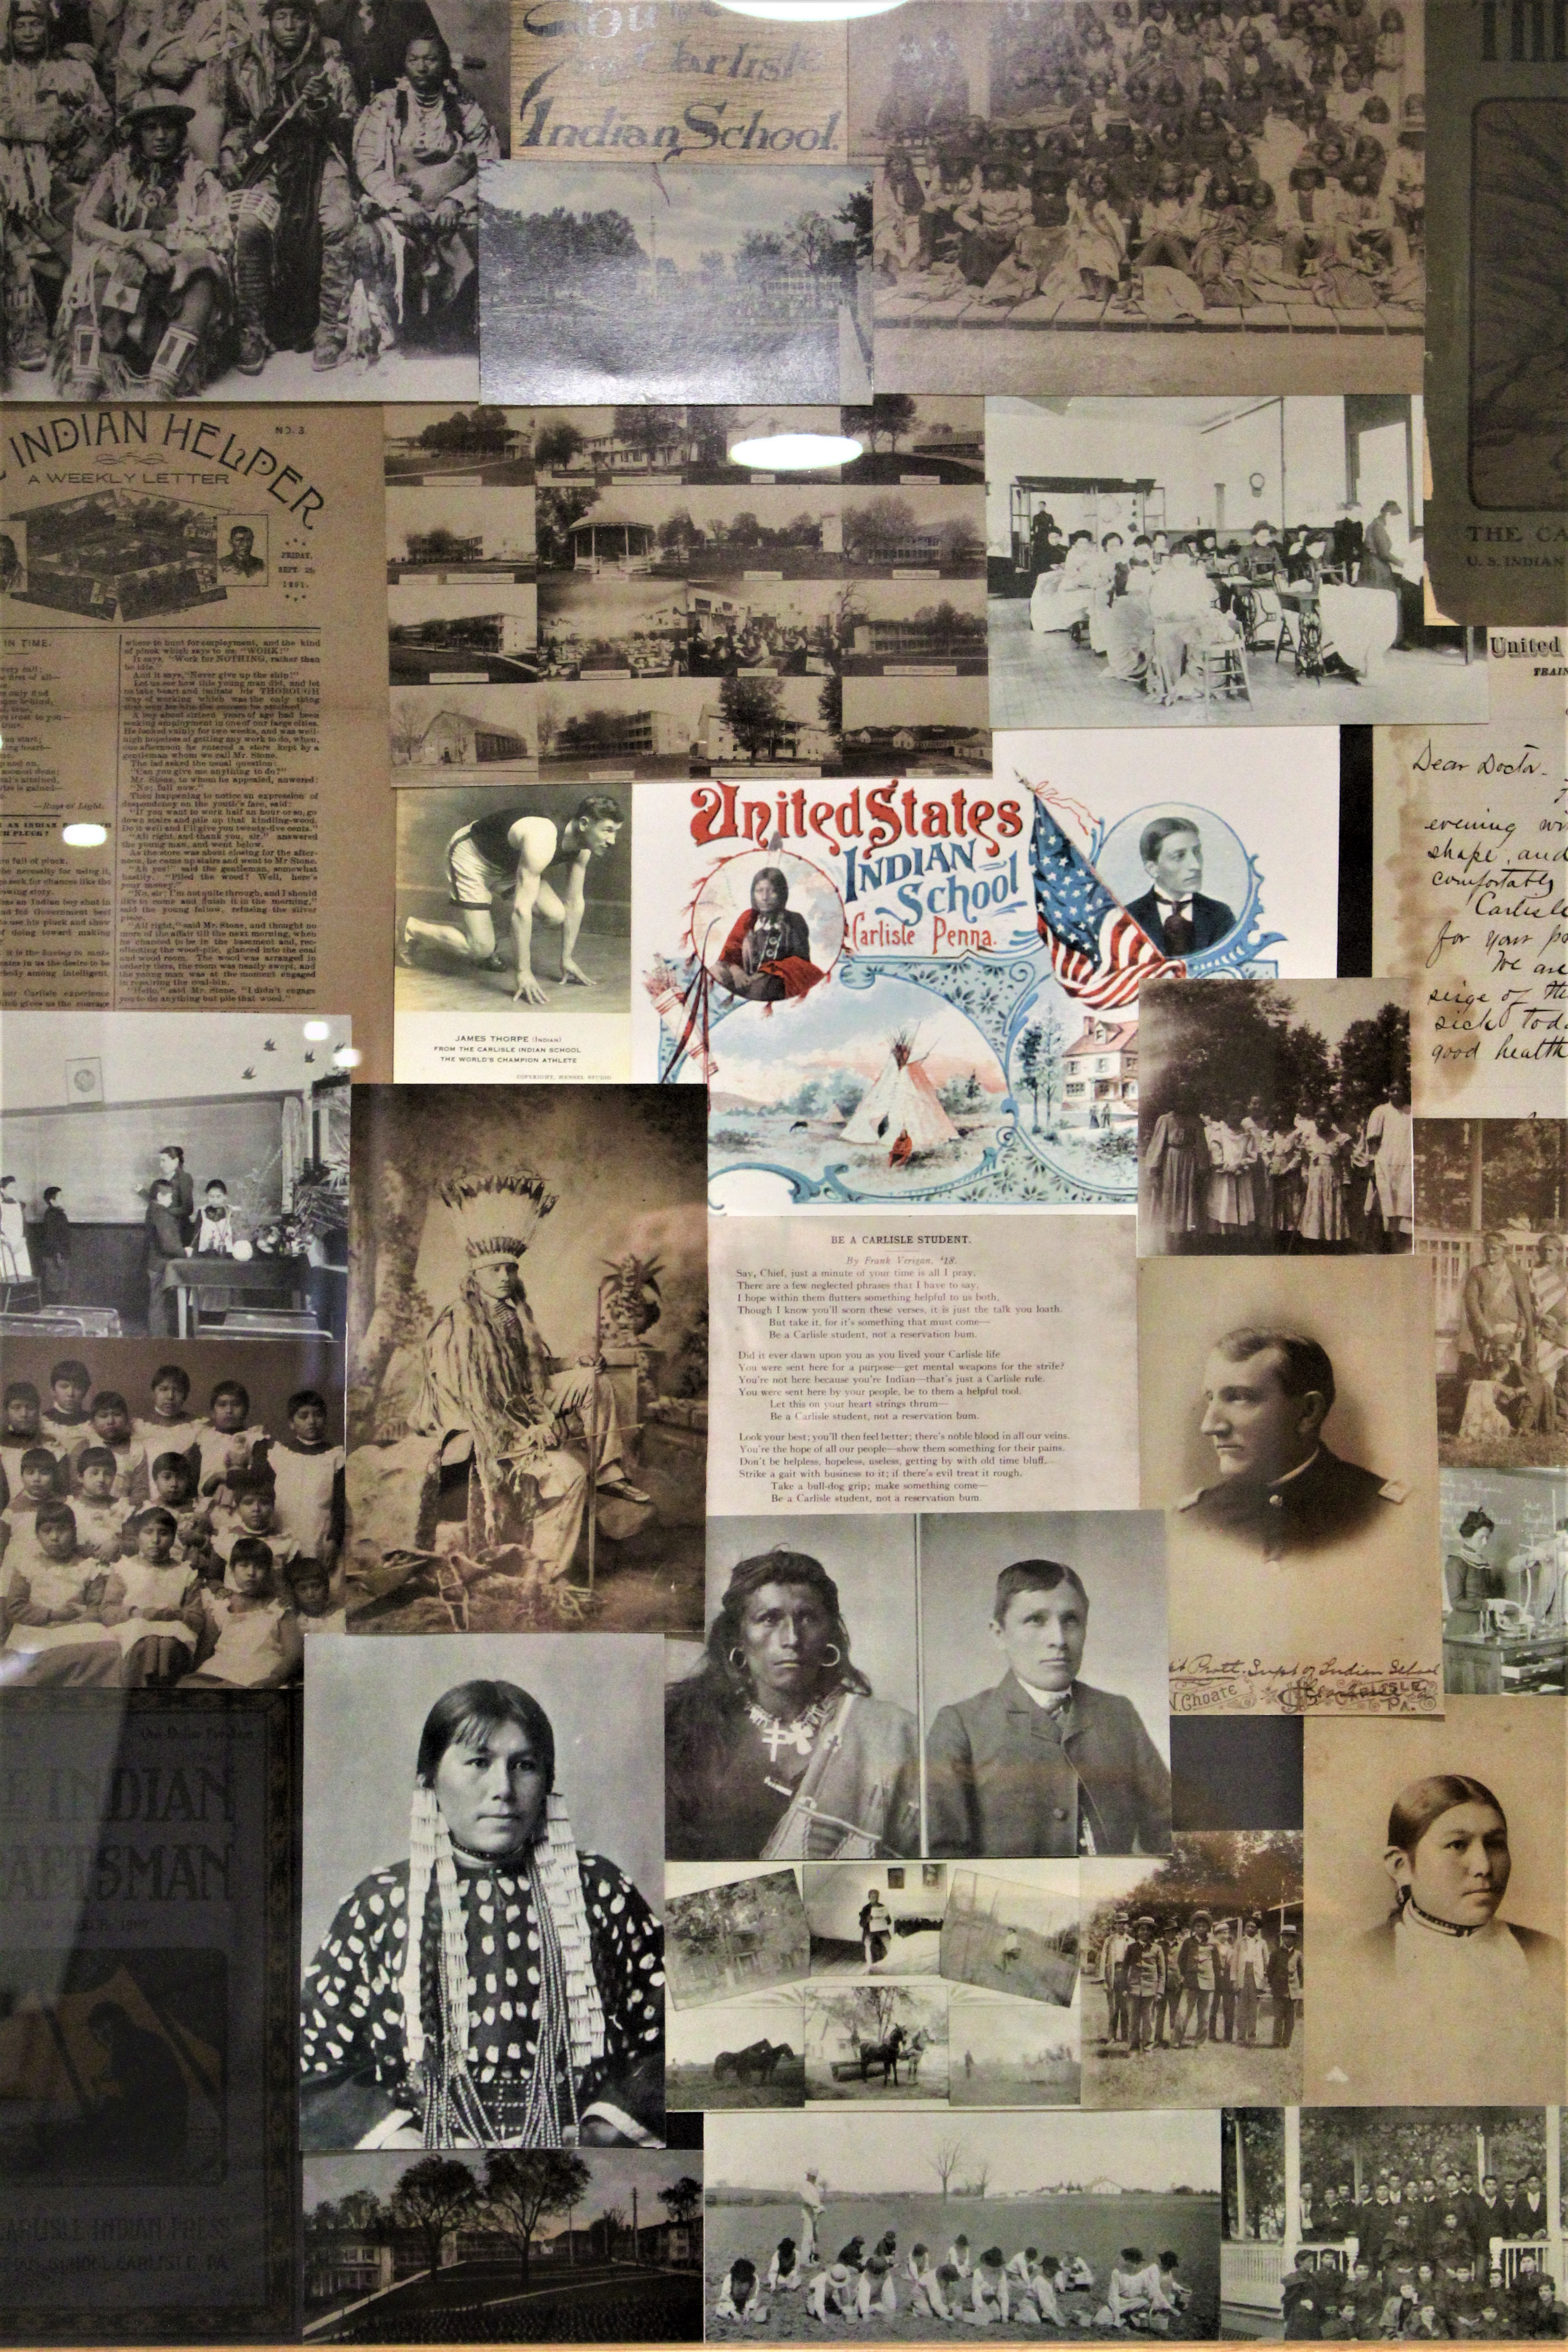 carlisle indian school collage